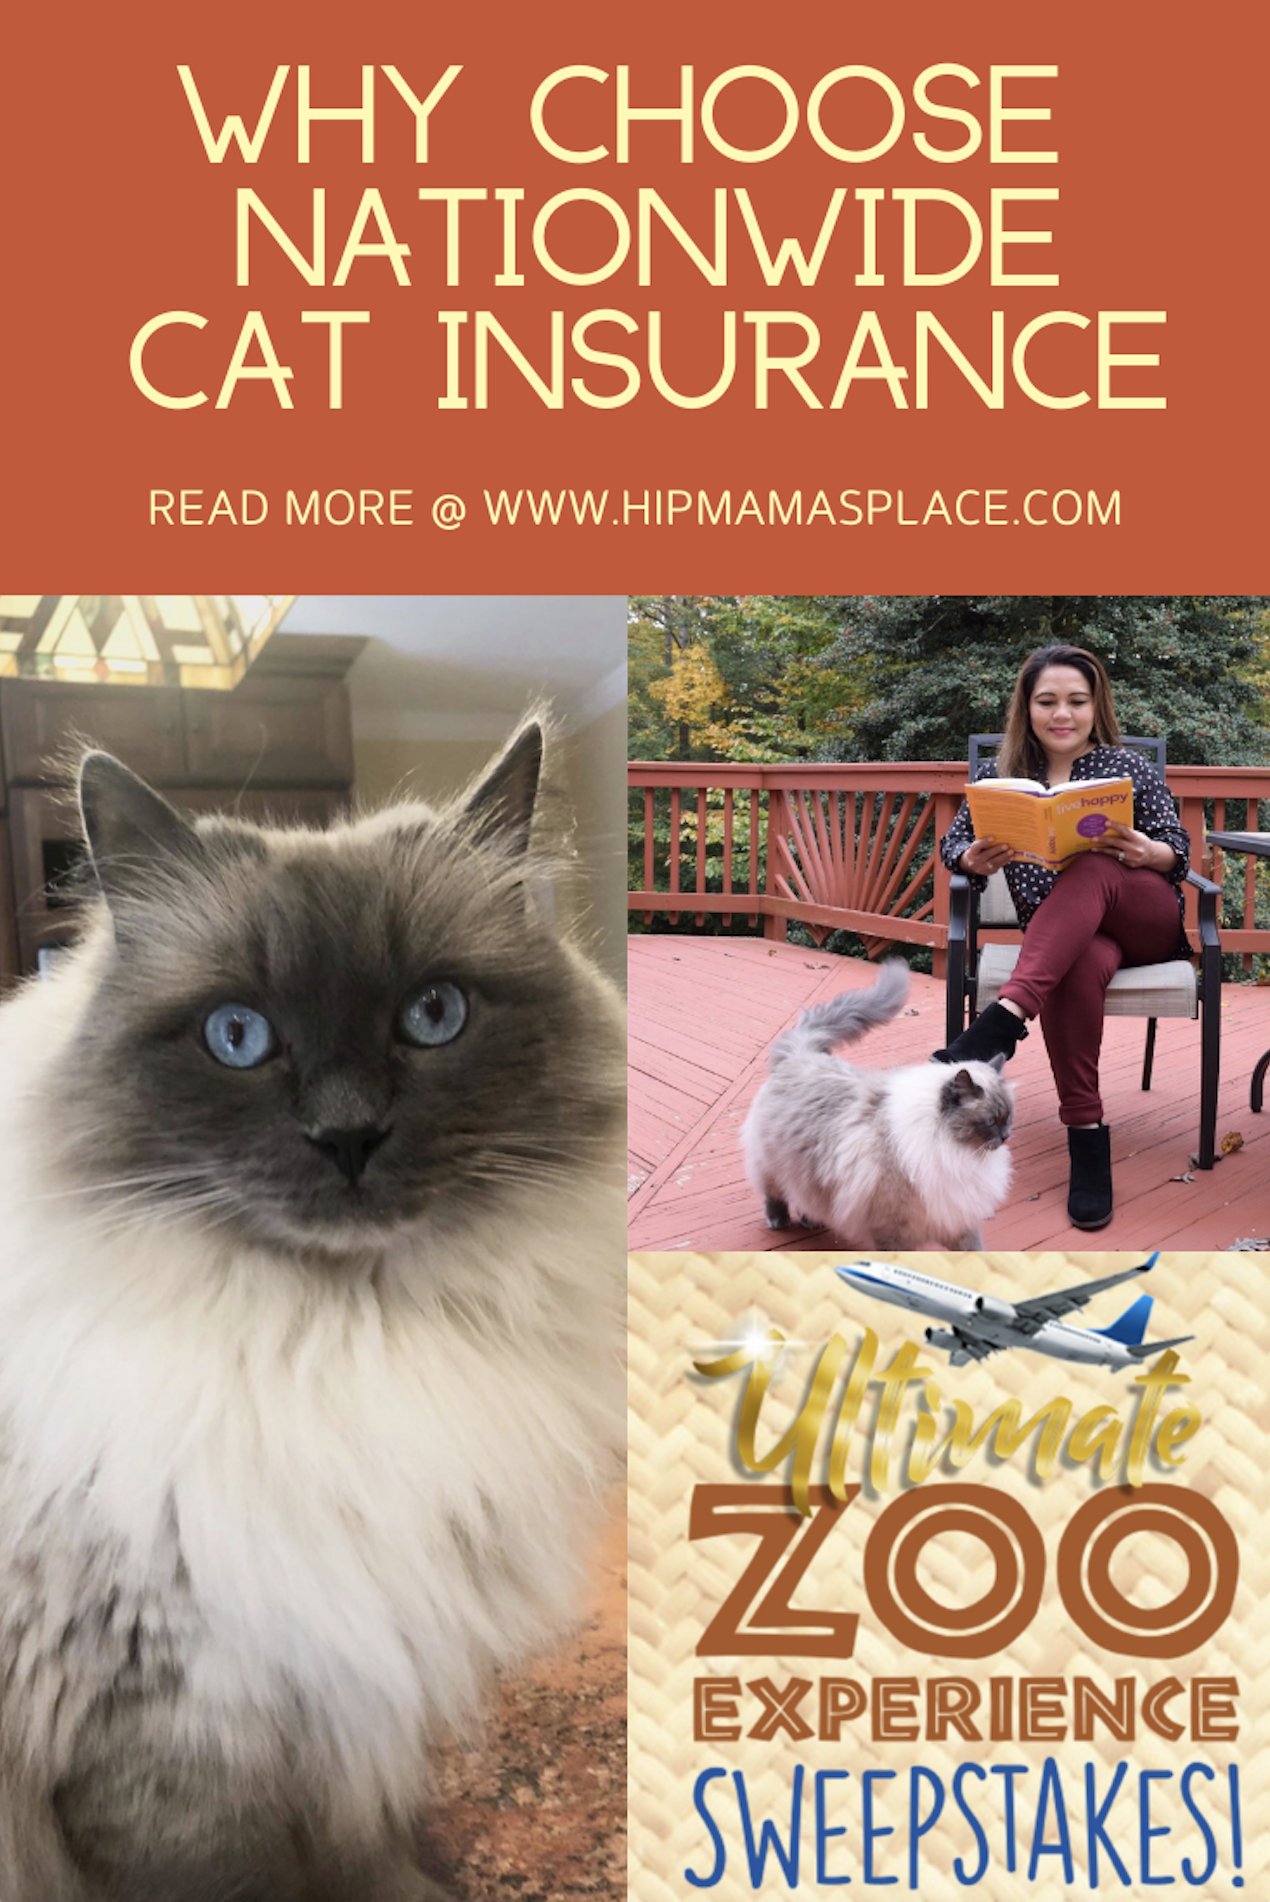 Get Your Free Quote For Cat Insurance With Nationwide Pet Cat Insurance Cat Parenting Cats